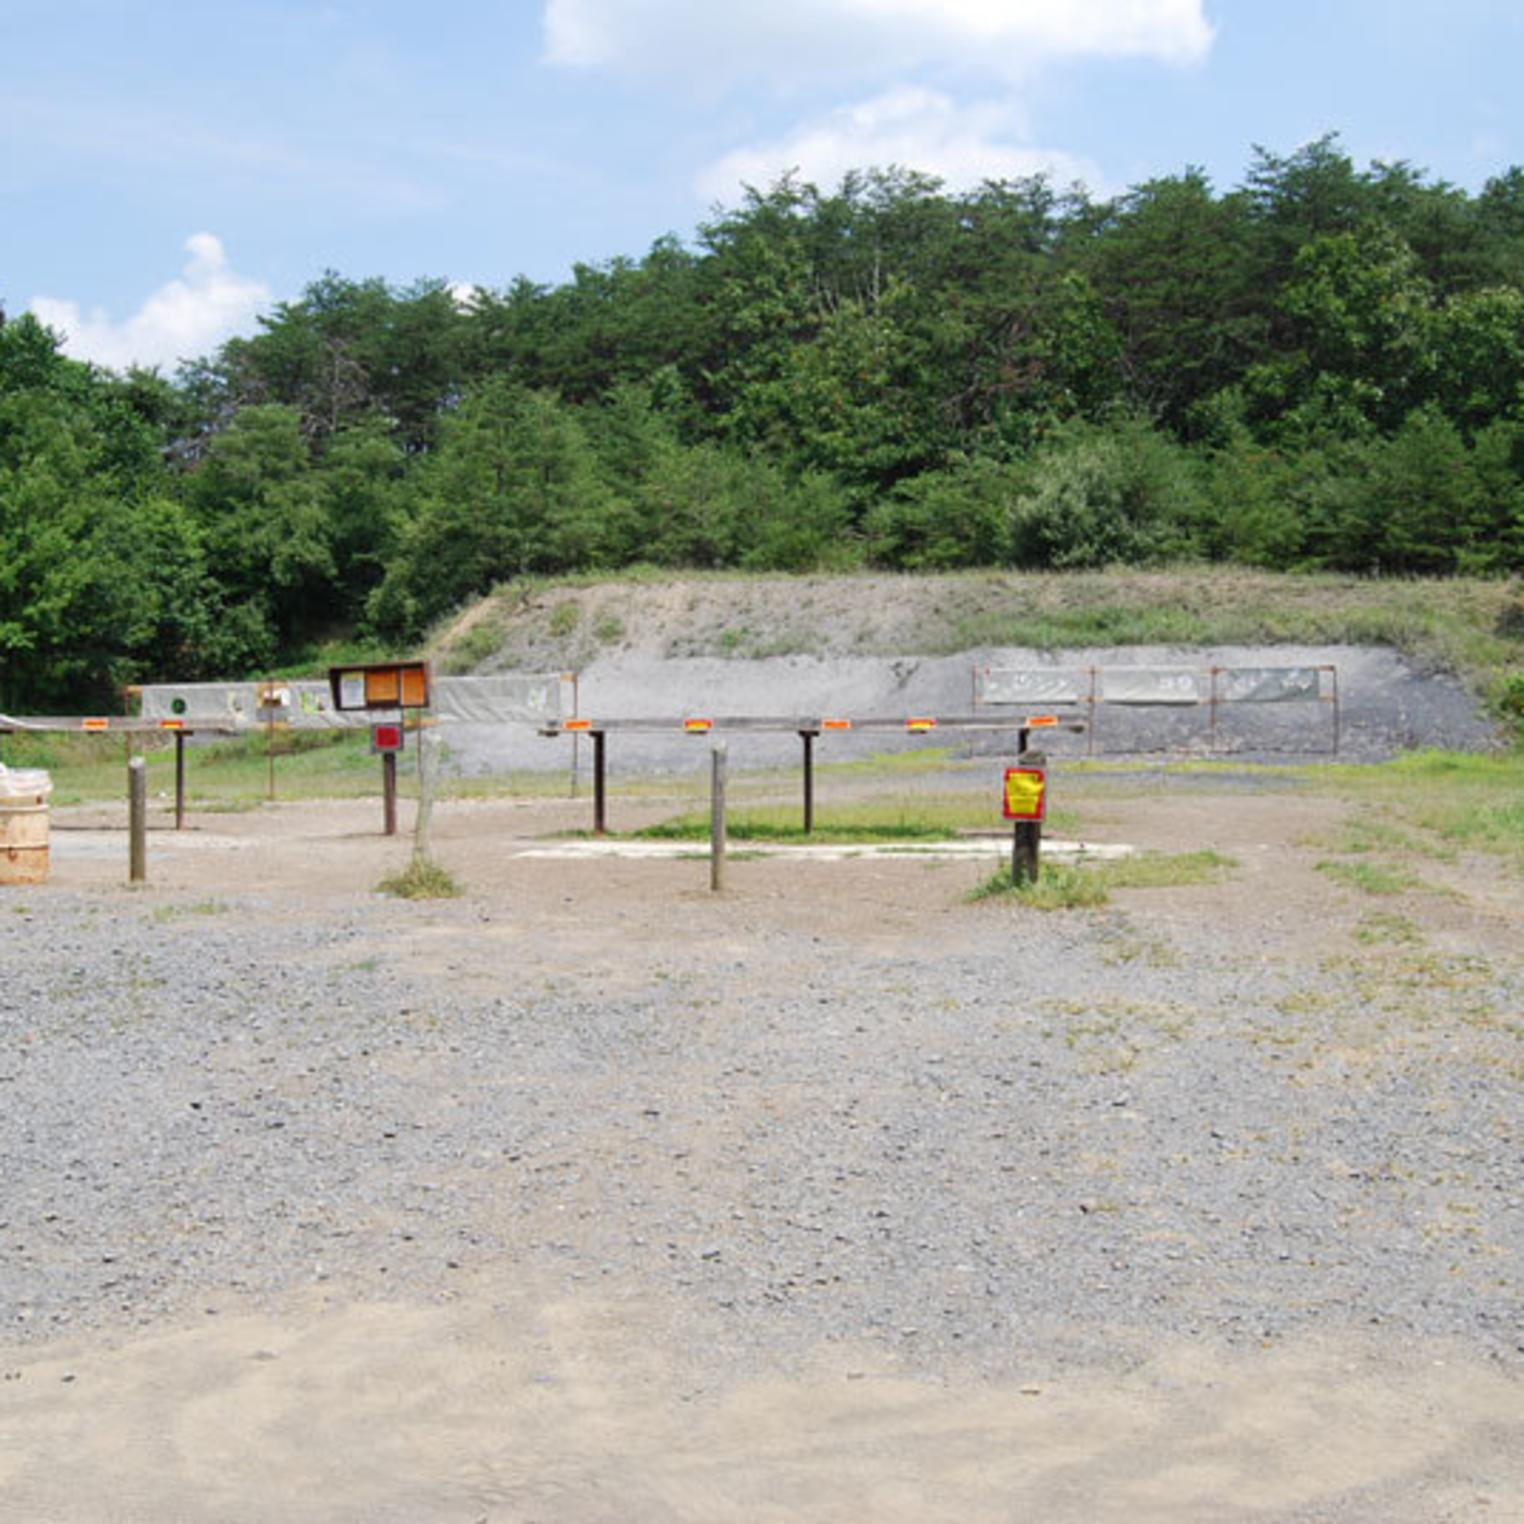 Sate Game Lands #230 Shooting Range